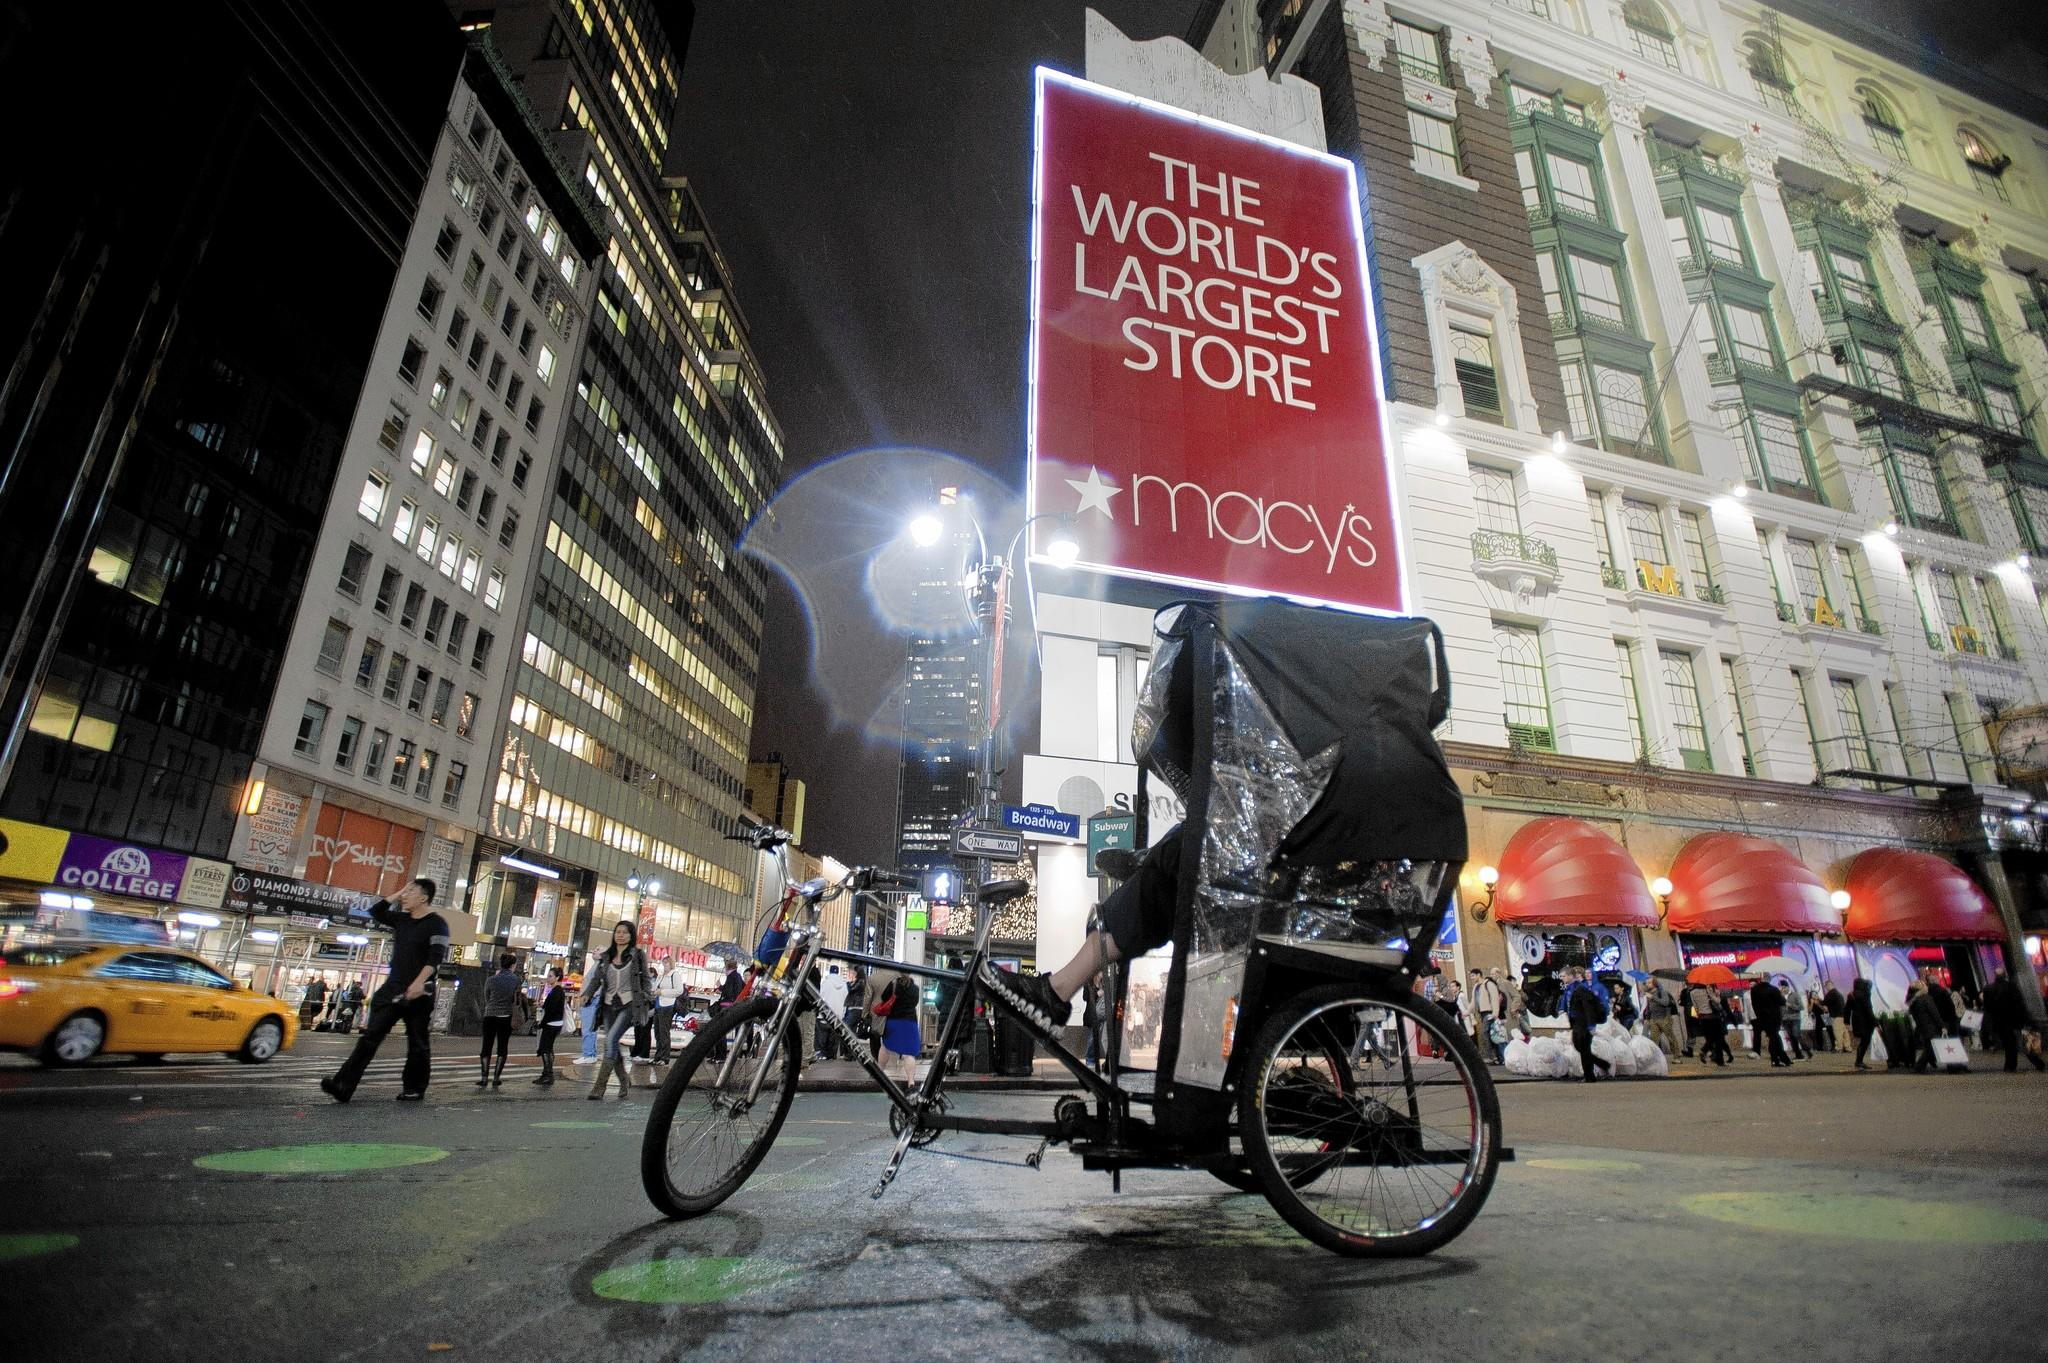 In November, Macy's began testing a product called ShopBeacon at stores in San Francisco and New York that enables a merchant to offer discounts on specific products that a customer has expressed interest in or, perhaps, has lingered near. Above, a store in New York.